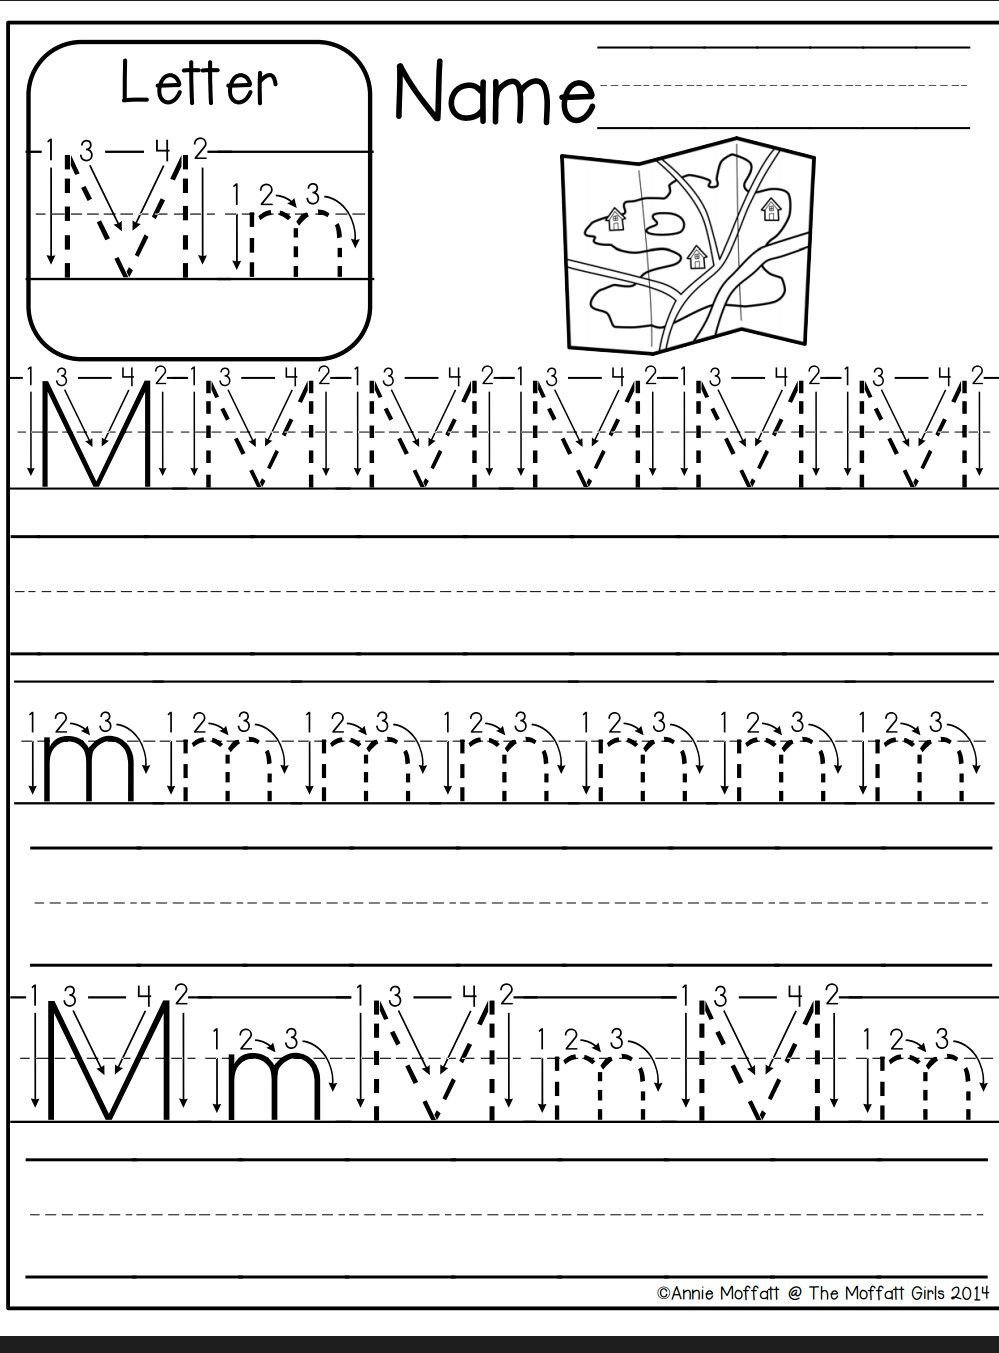 Letter M Worksheets for Preschoolers Letter M Worksheet